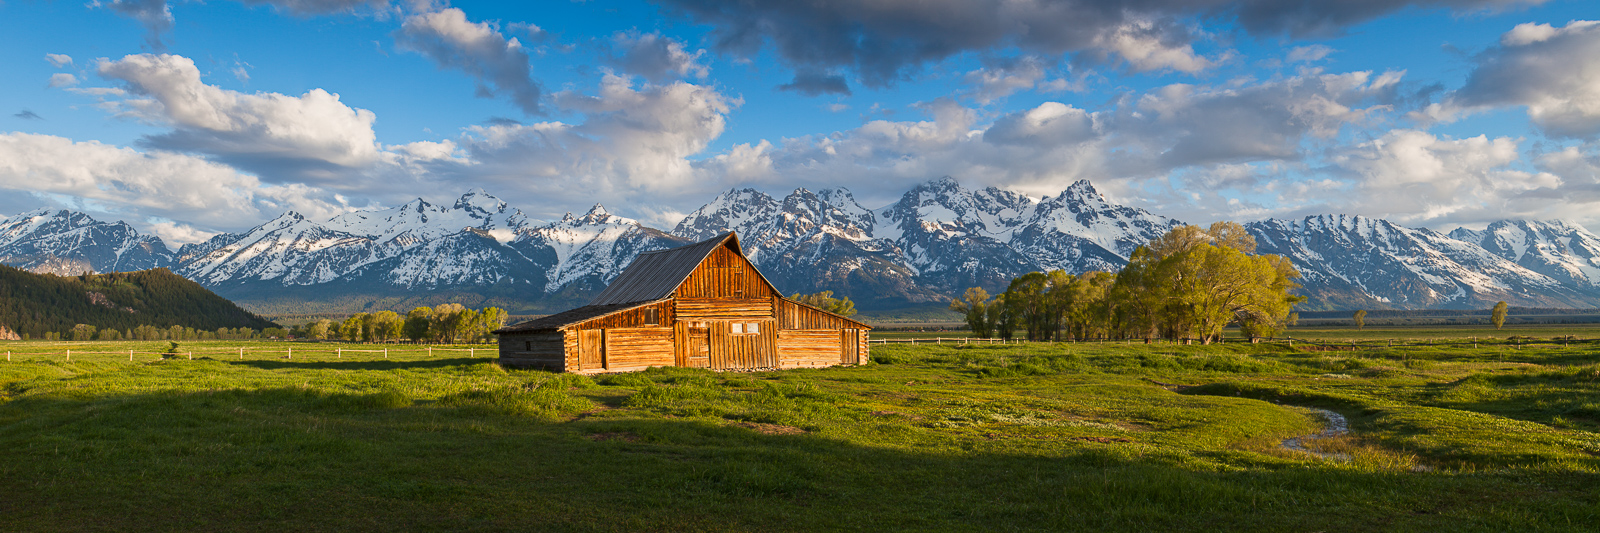 Memmories of Old,Grand Teton NP,Mormon Row,National Park,barn,green,landscape,morning,panoramic,rustic,sunrise, photo